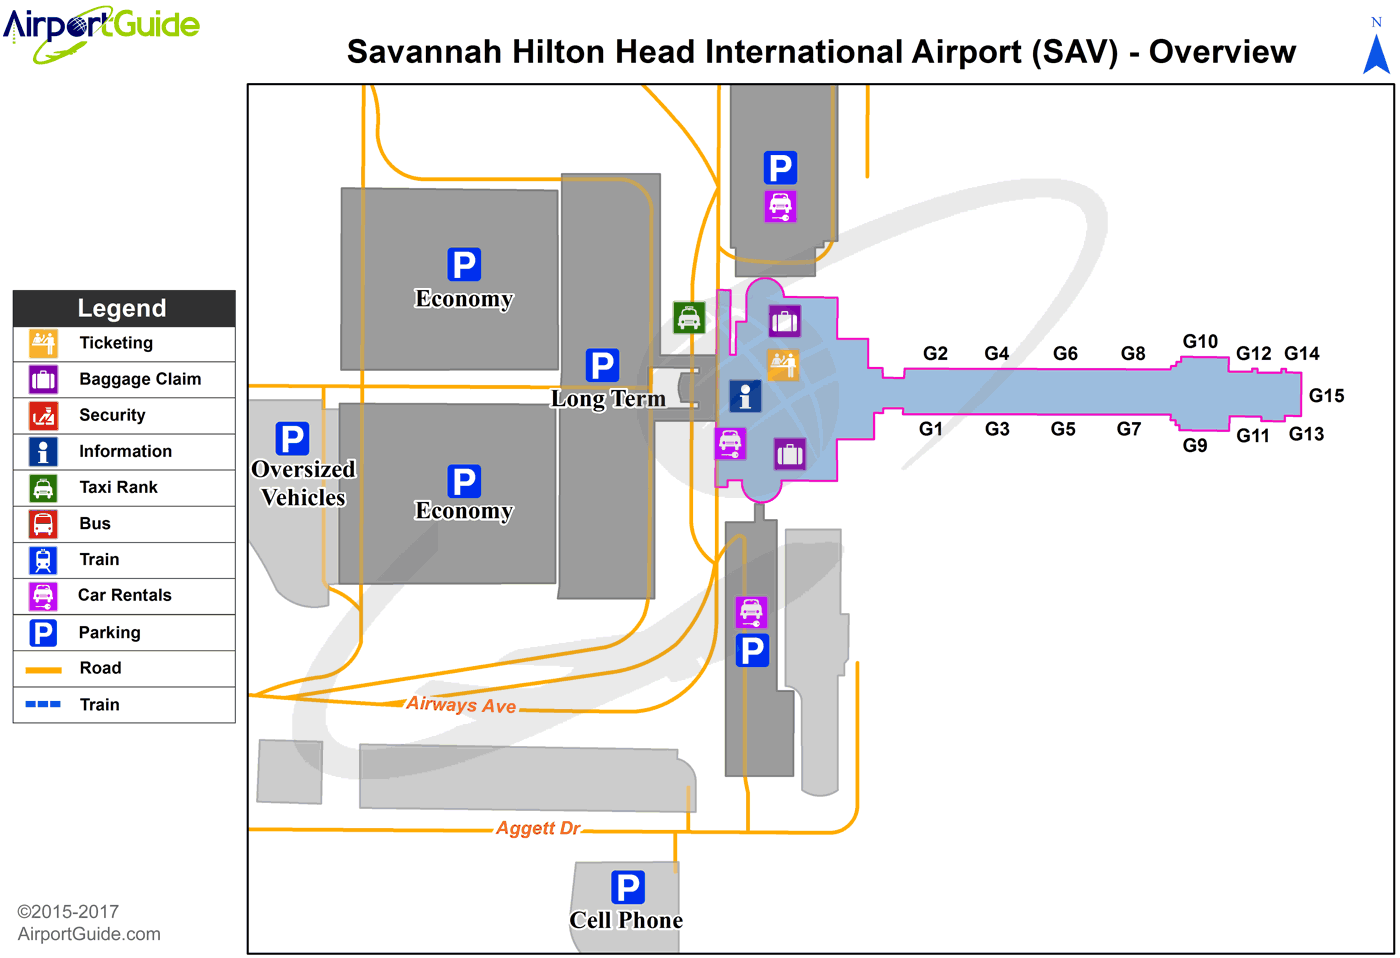 Savannah - Savannah/Hilton Head International (SAV) Airport Terminal Map - Overview